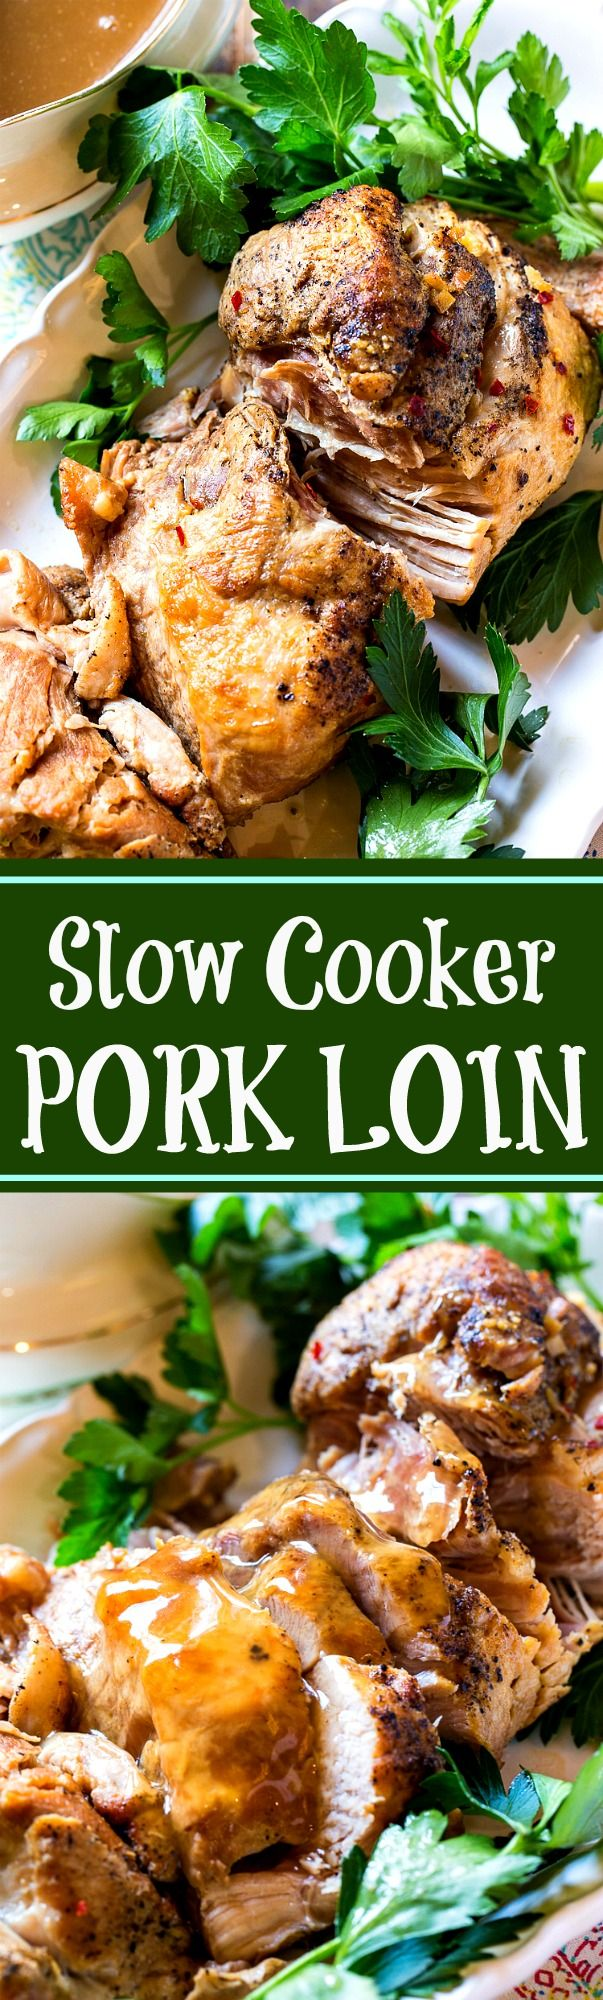 Slow Cooker Pork Loin with gravy. So tender and juicy!